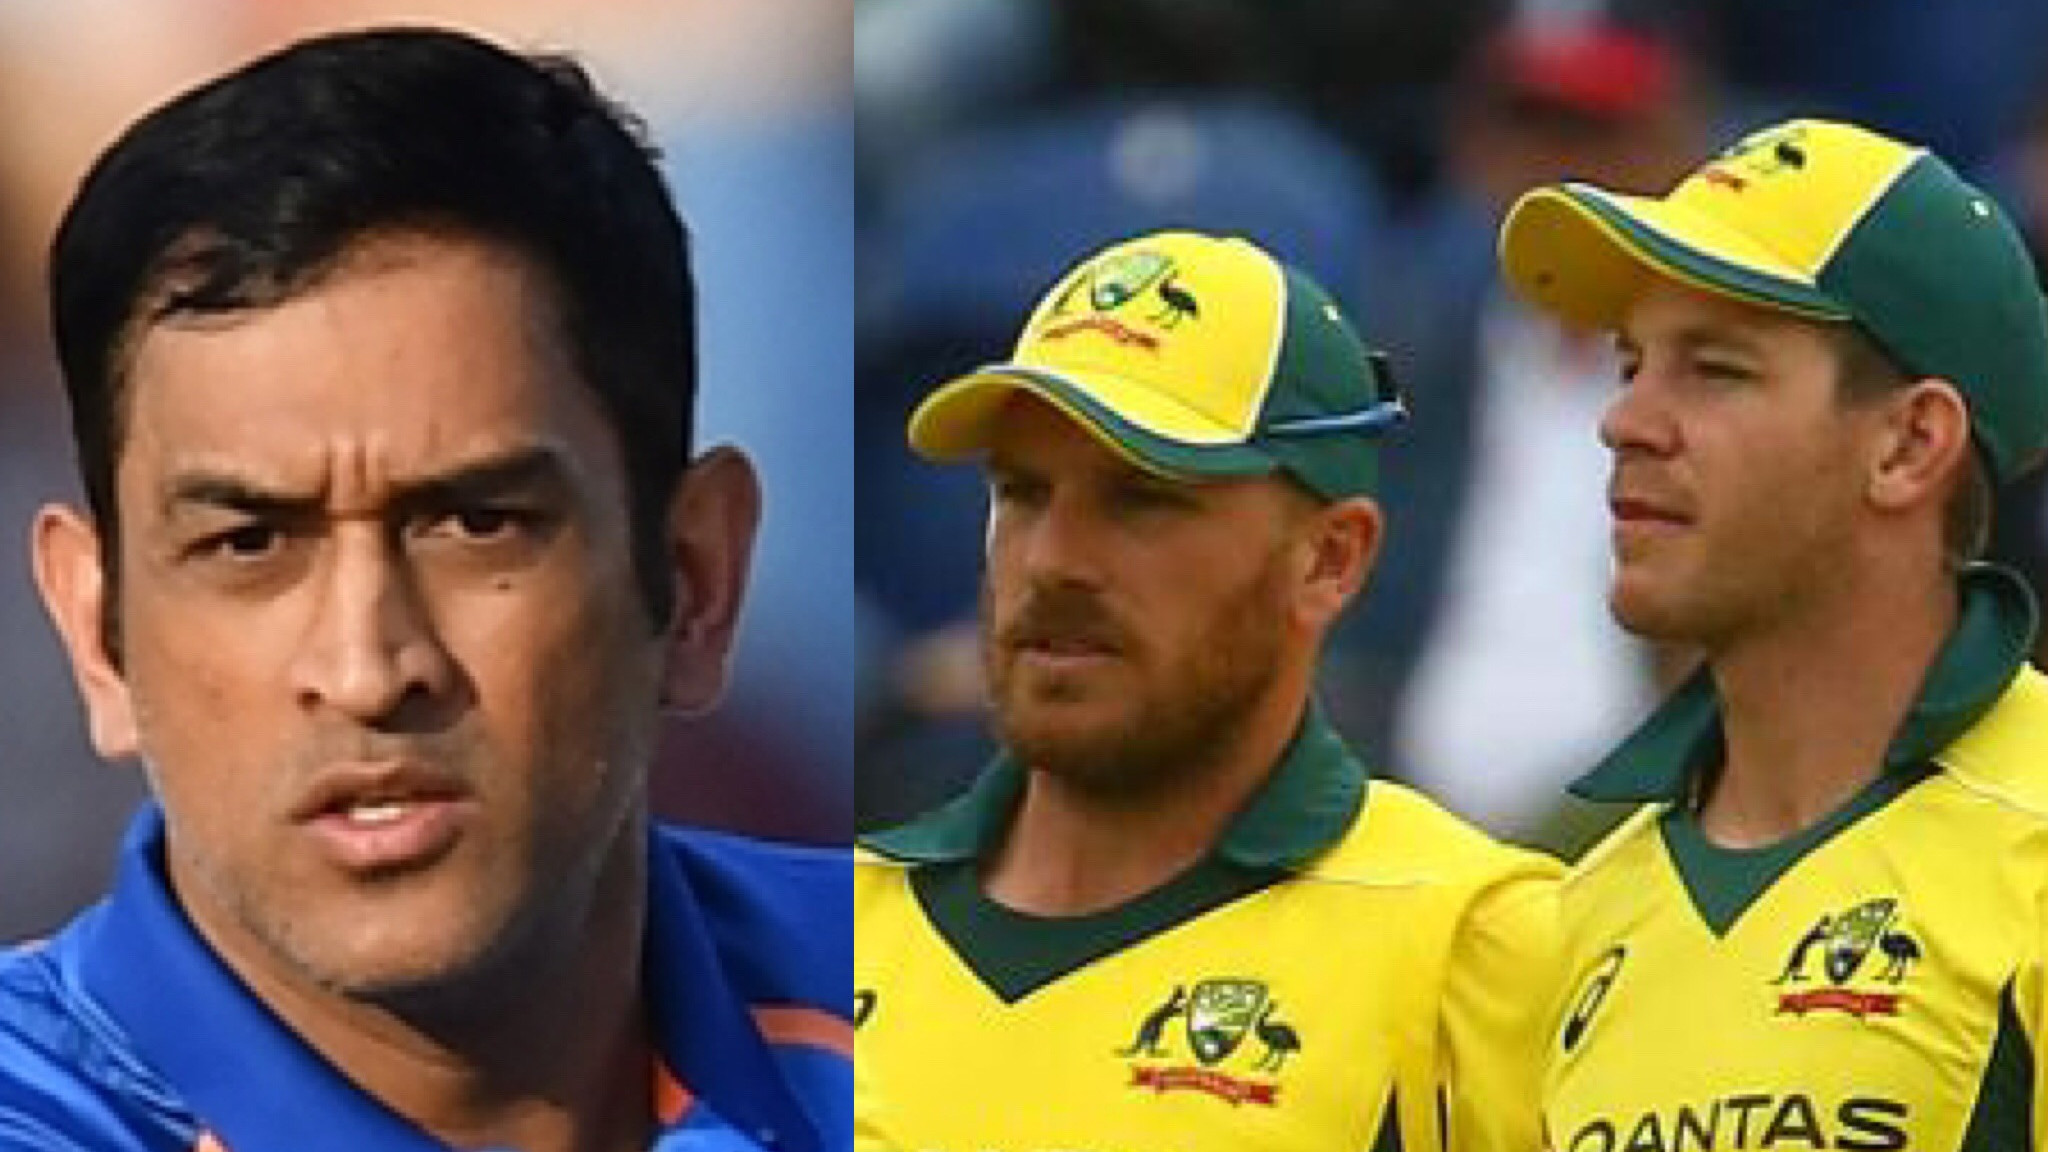 AUS v IND 2018-19: MS Dhoni gets praise from Australian team as he gears up for ODI series